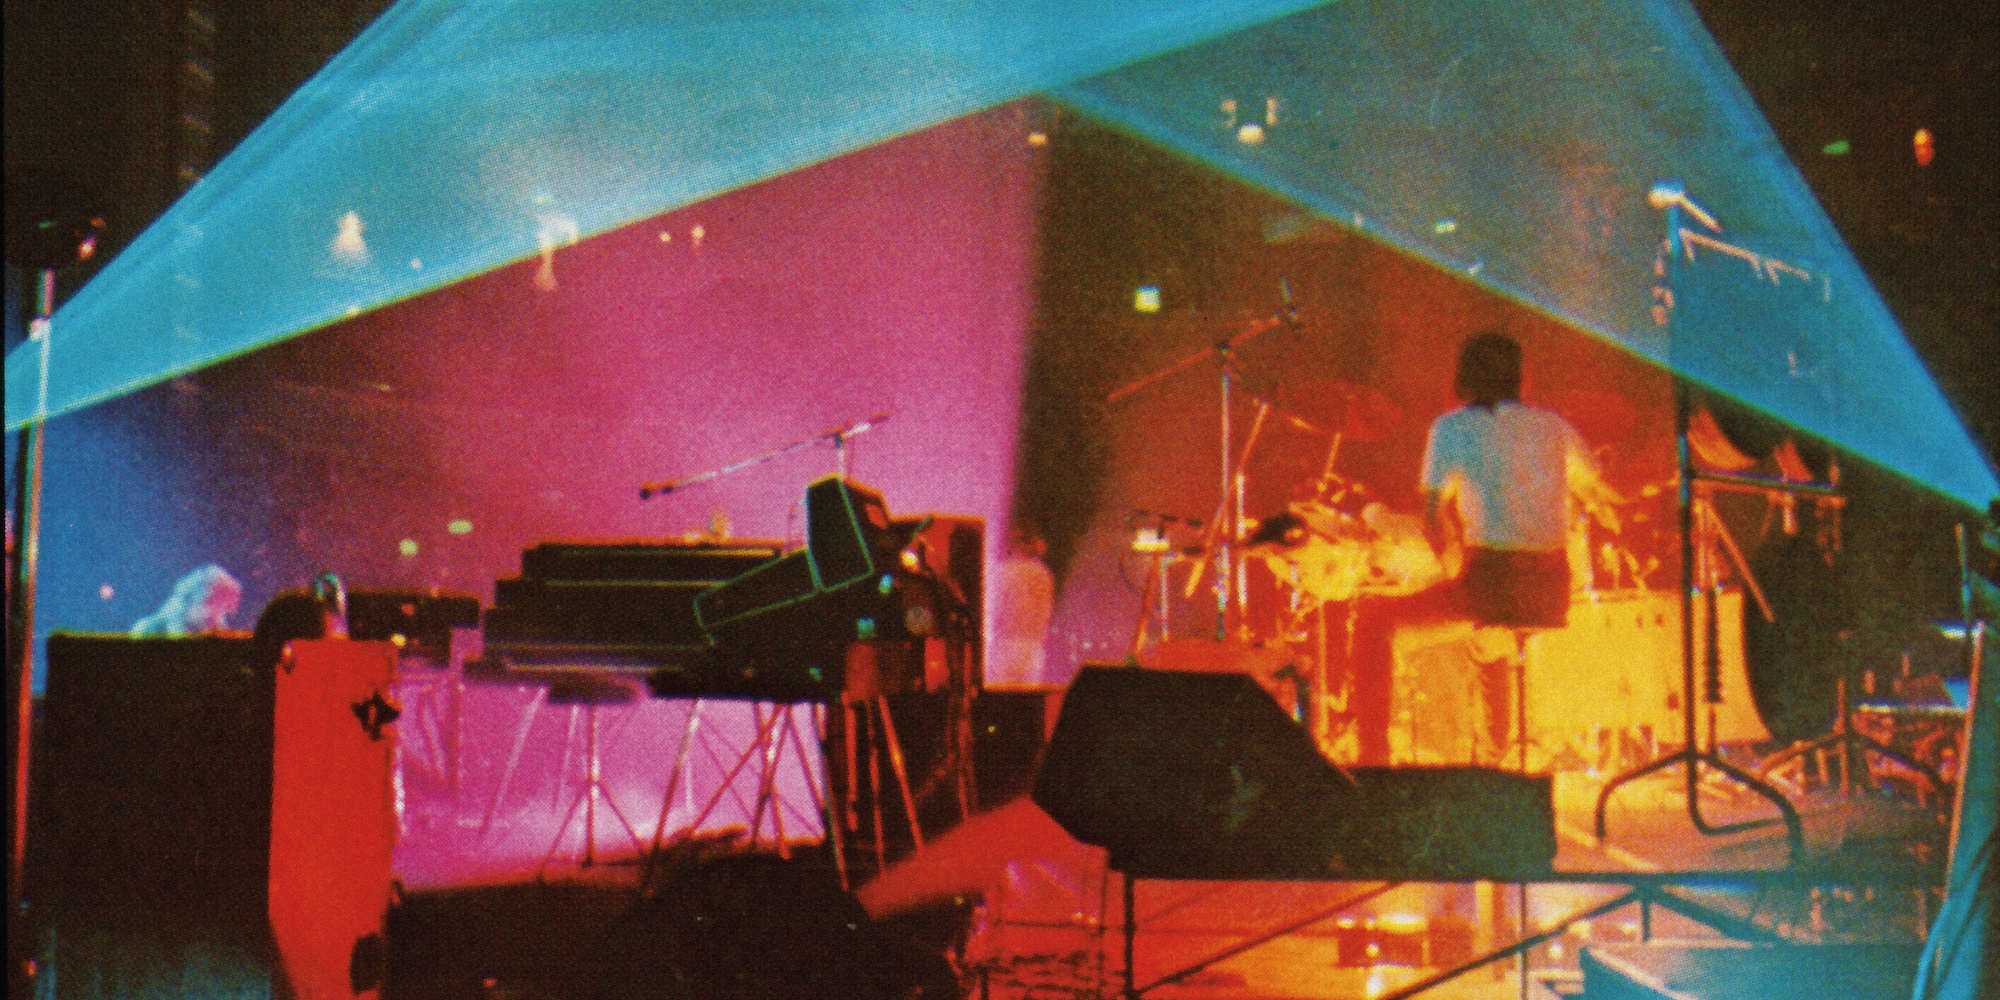 An introduction to Krautrock legends Tangerine Dream - The